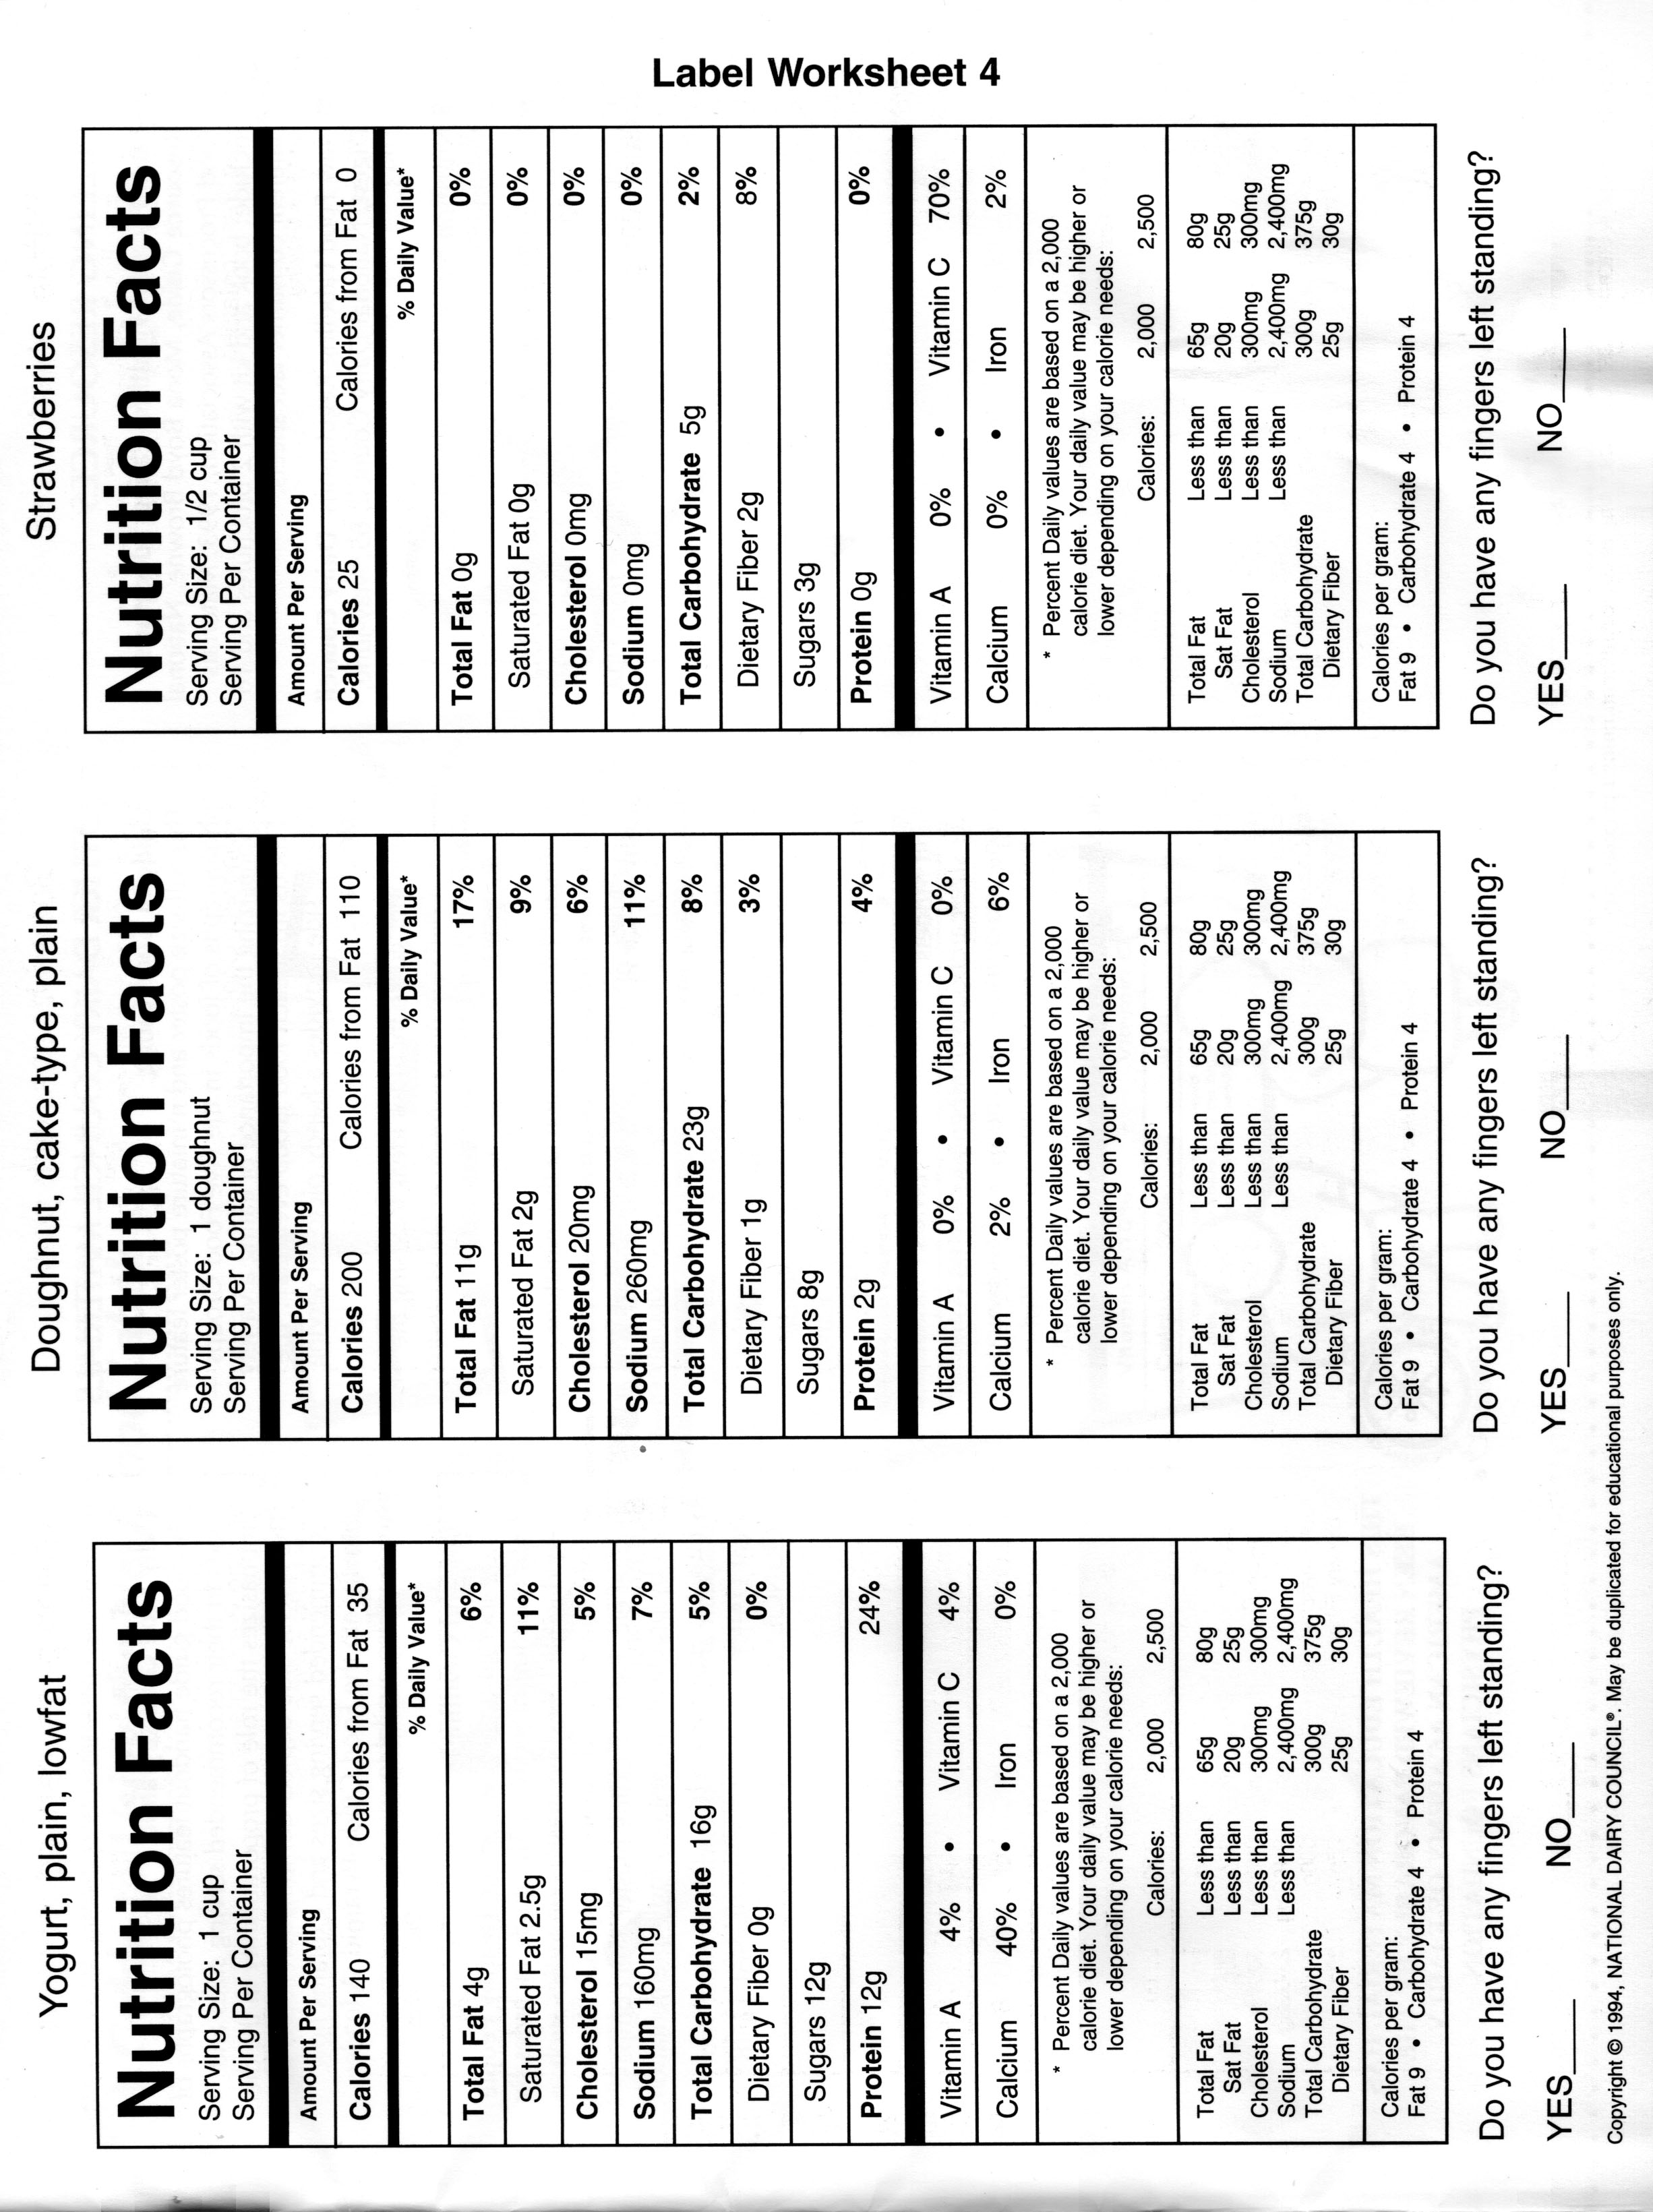 9 Best Images Of Nutrition Label Worksheet Answer Key